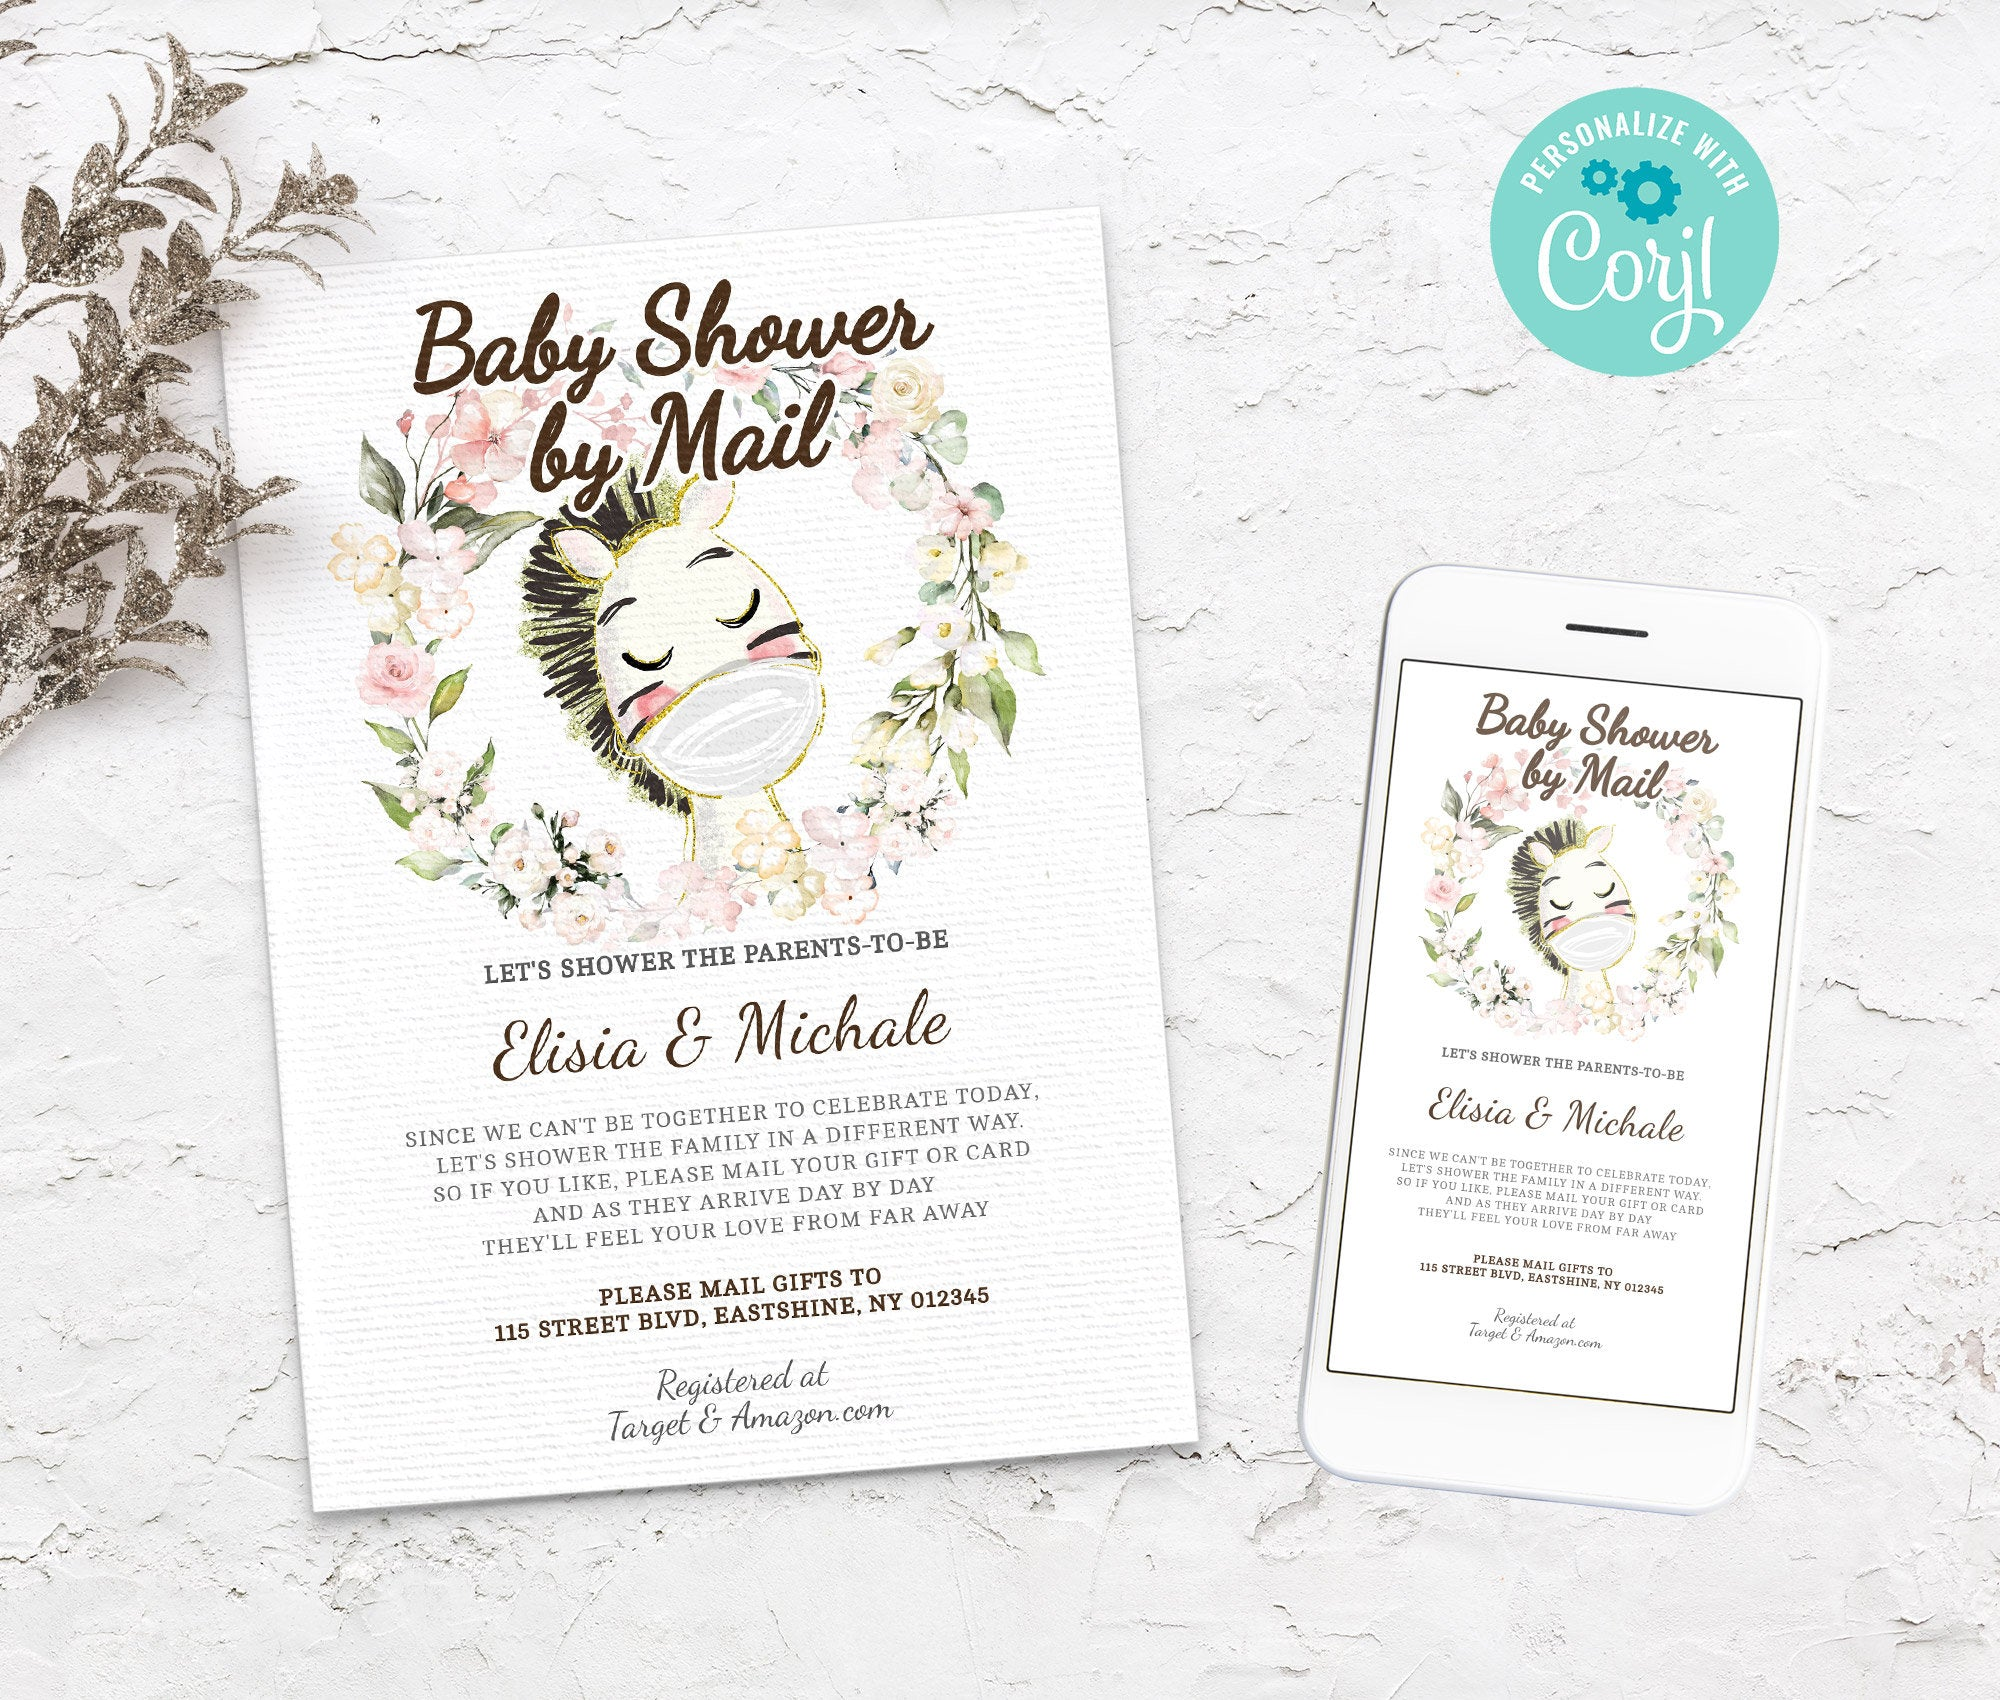 Baby Shower by Mail Horse Template - Baby shower invitation - Shower by Mail, Shower invite,  Editable Text, Instant Download,3614 BS3601